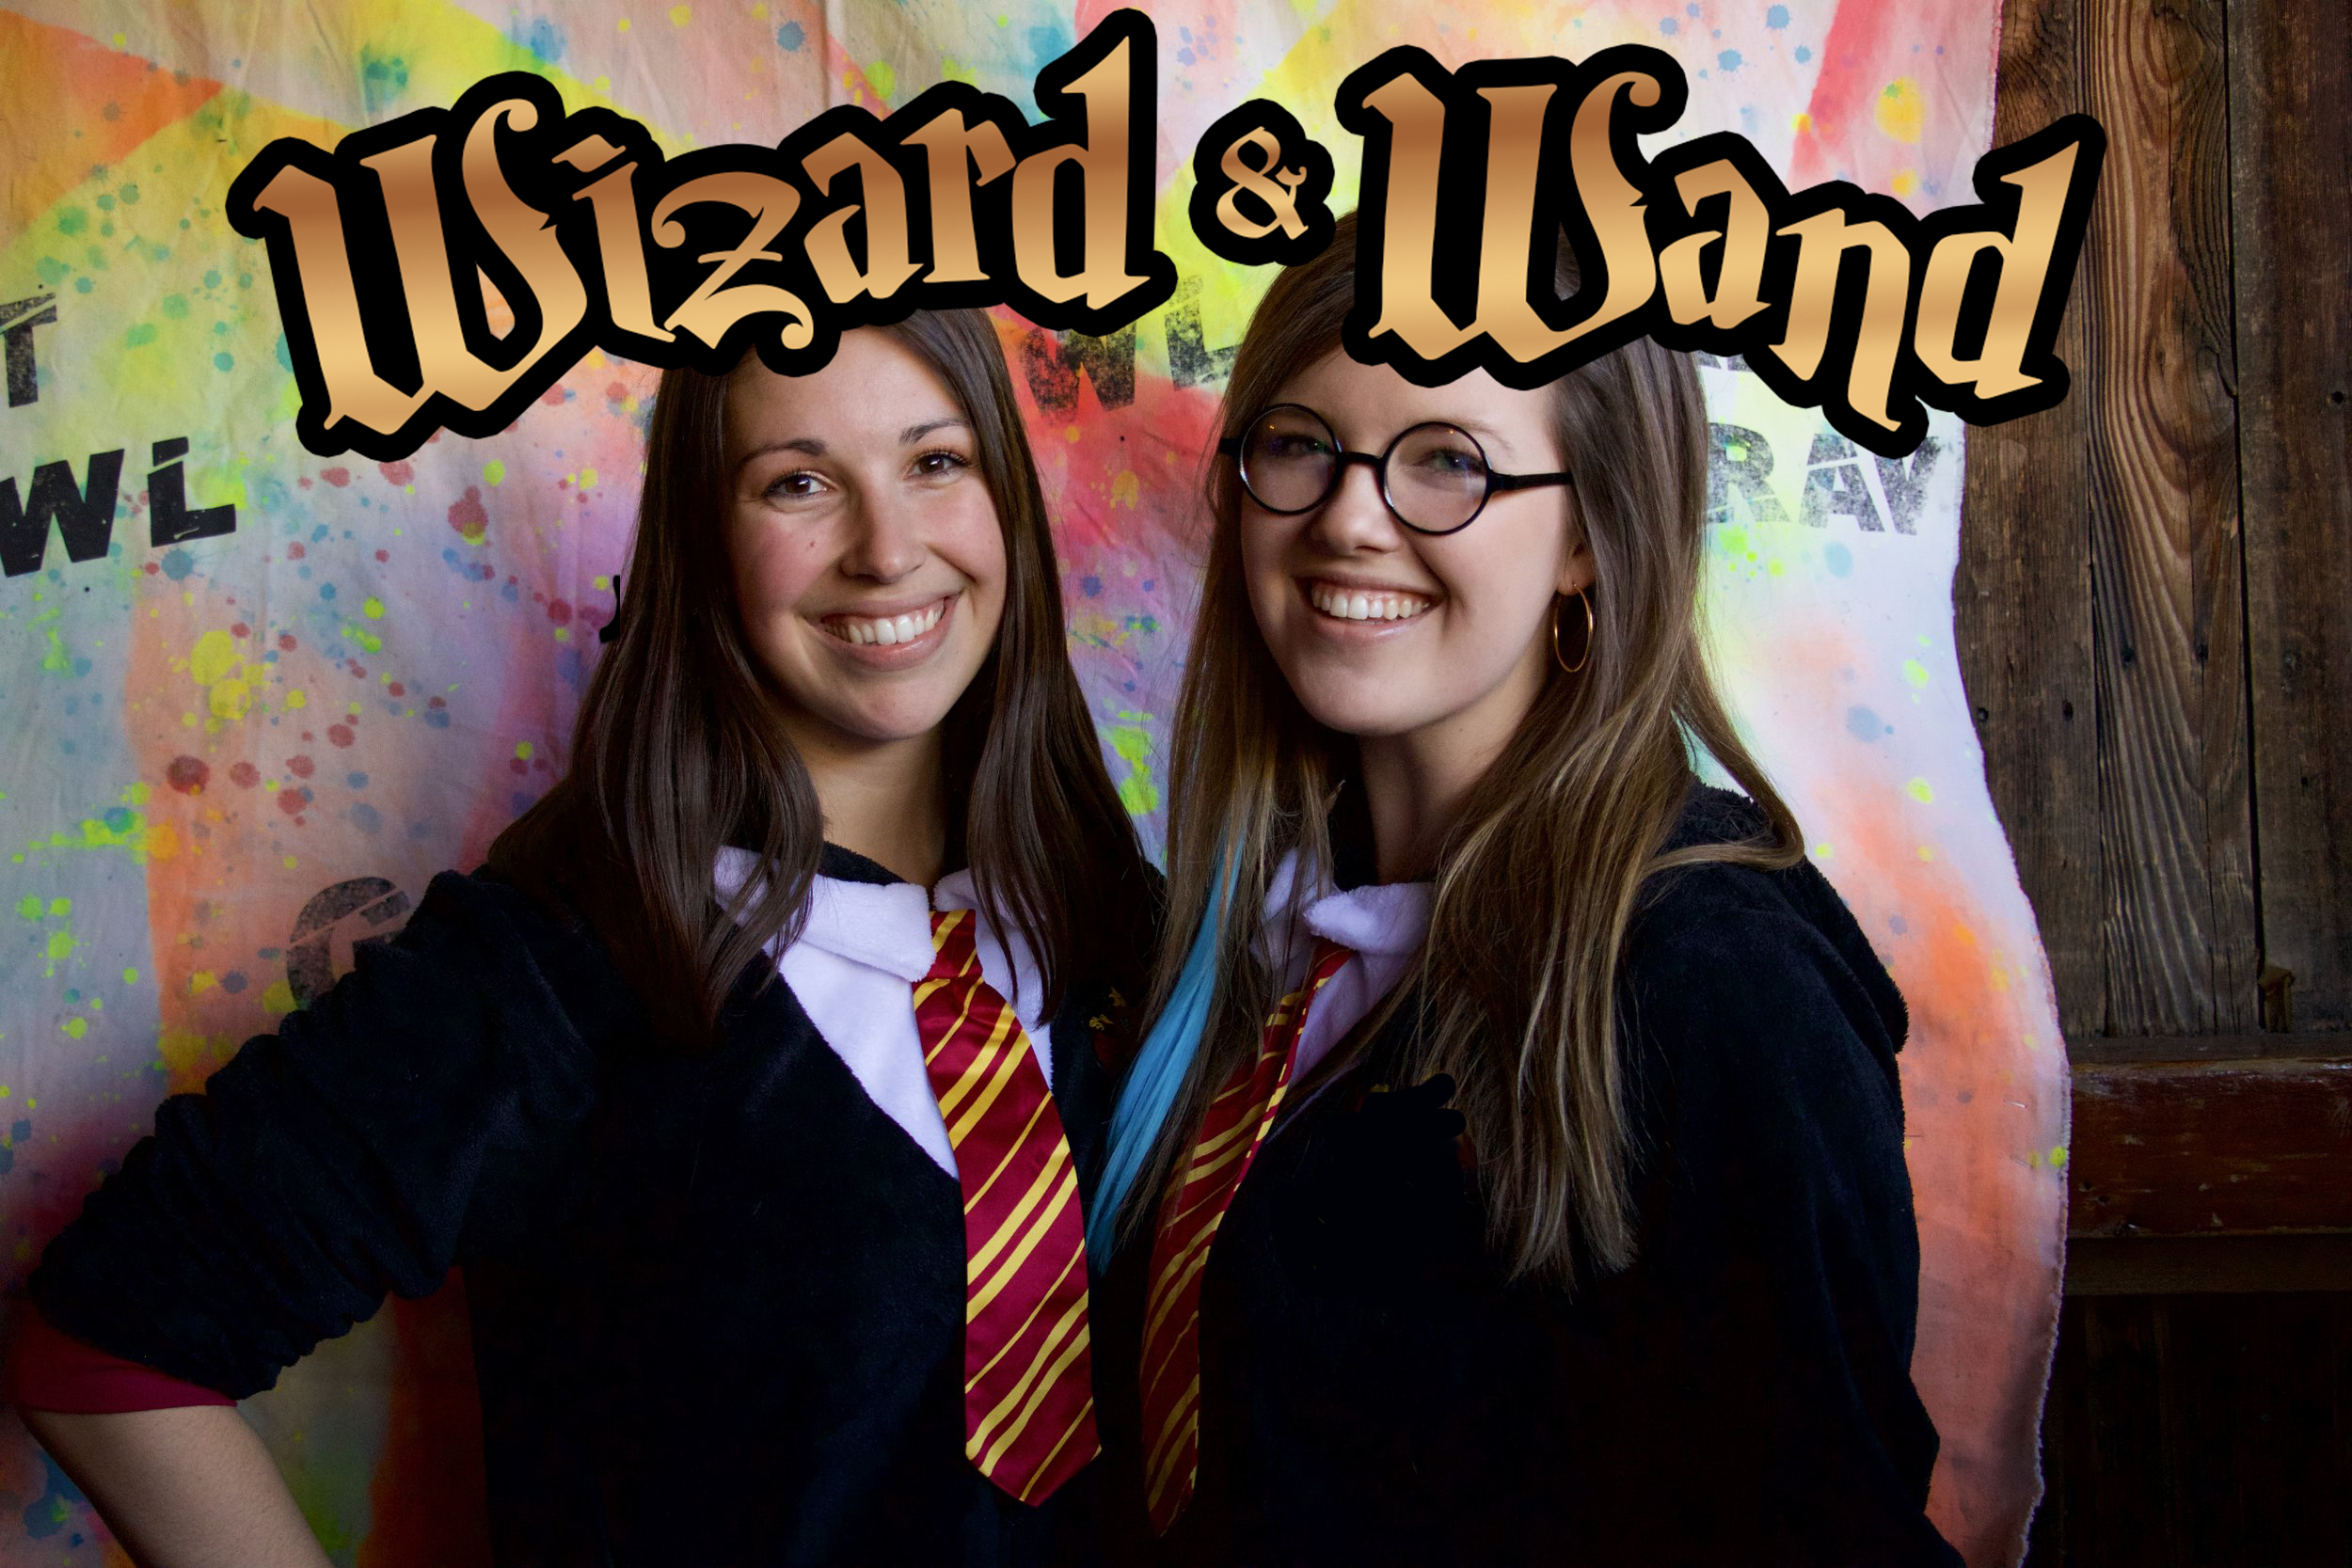 wizard and wand social.jpg